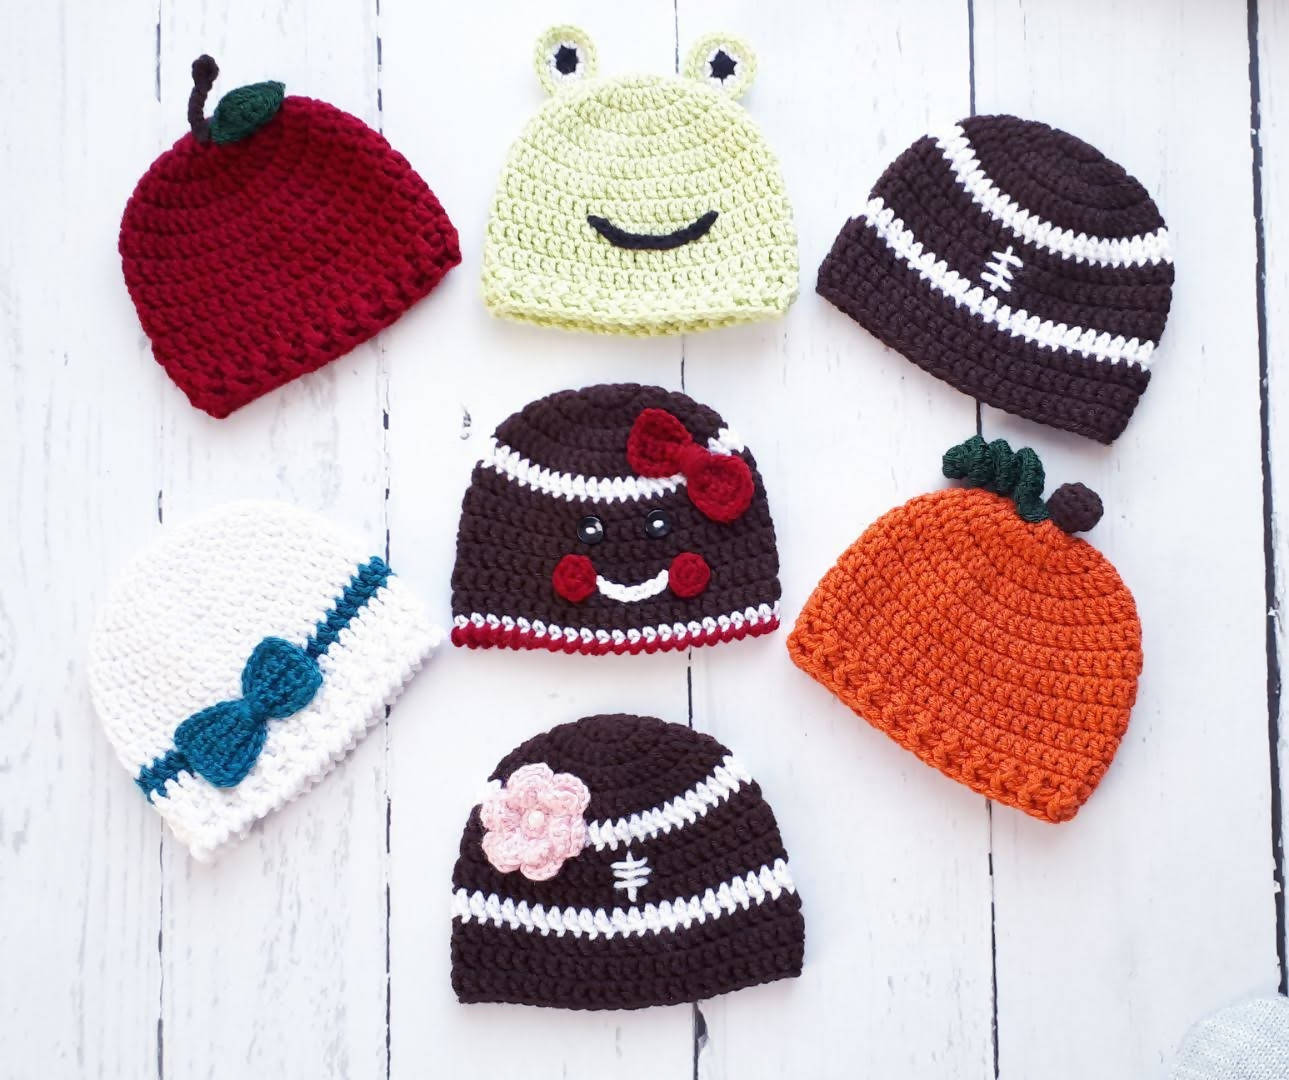 Set of 7 Newborn Hats